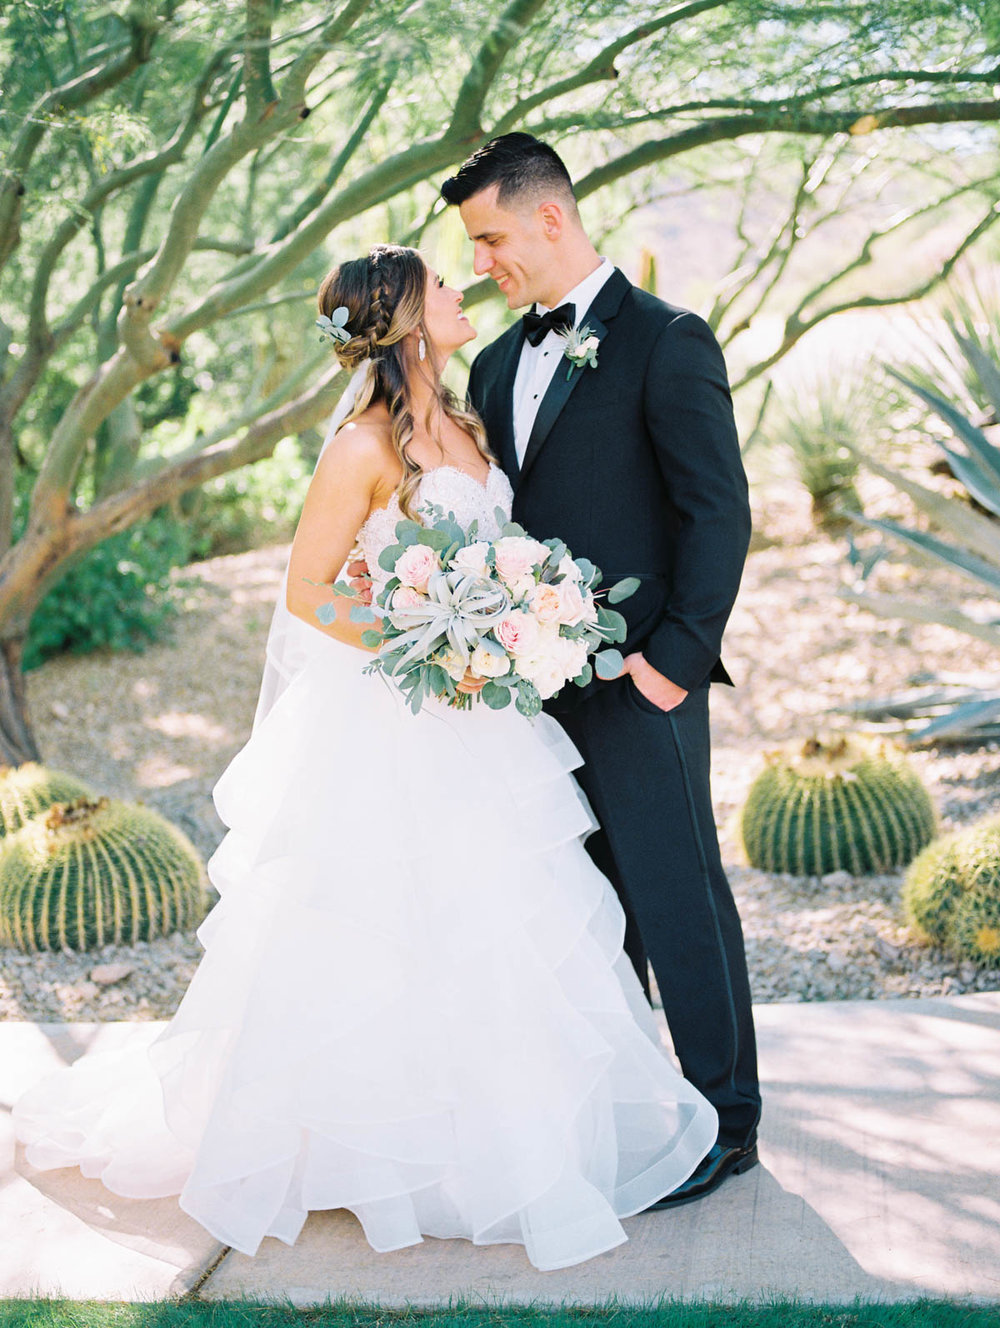 Smiling bride & groom captured by Tucson Wedding Photographers Betsy & John